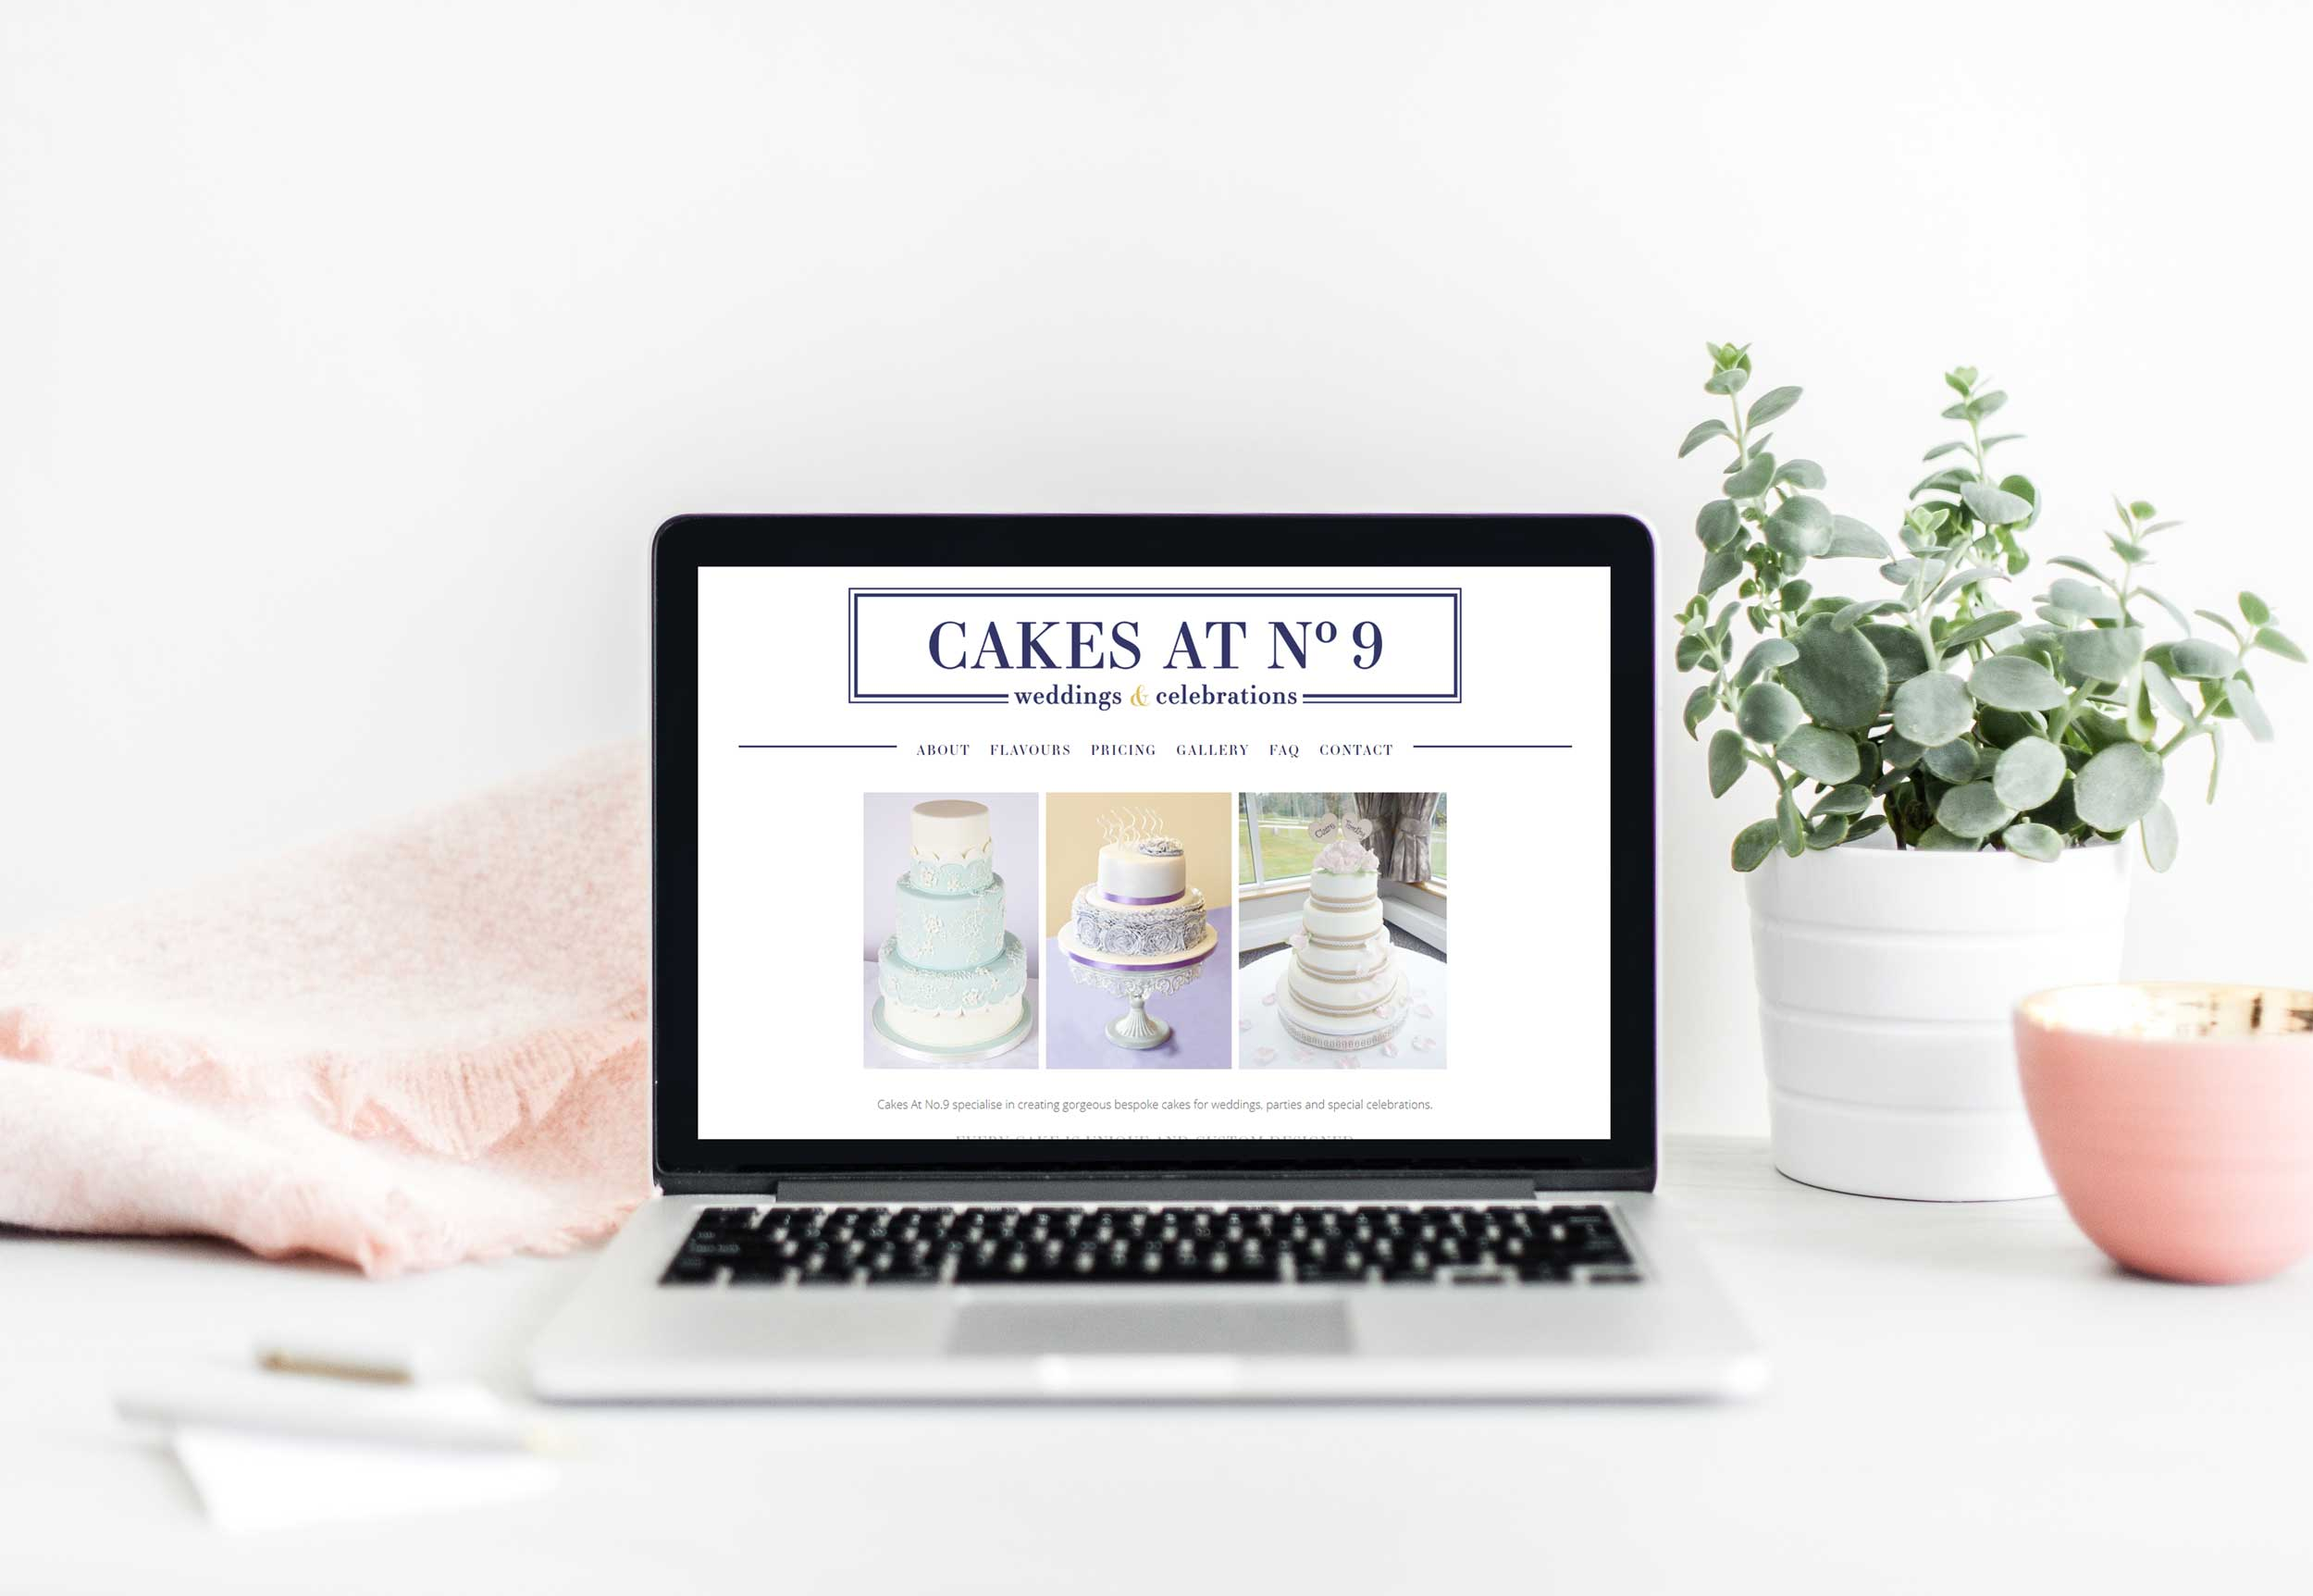 Laptop with bakery website example, save time with a frequently asked questions page on your website